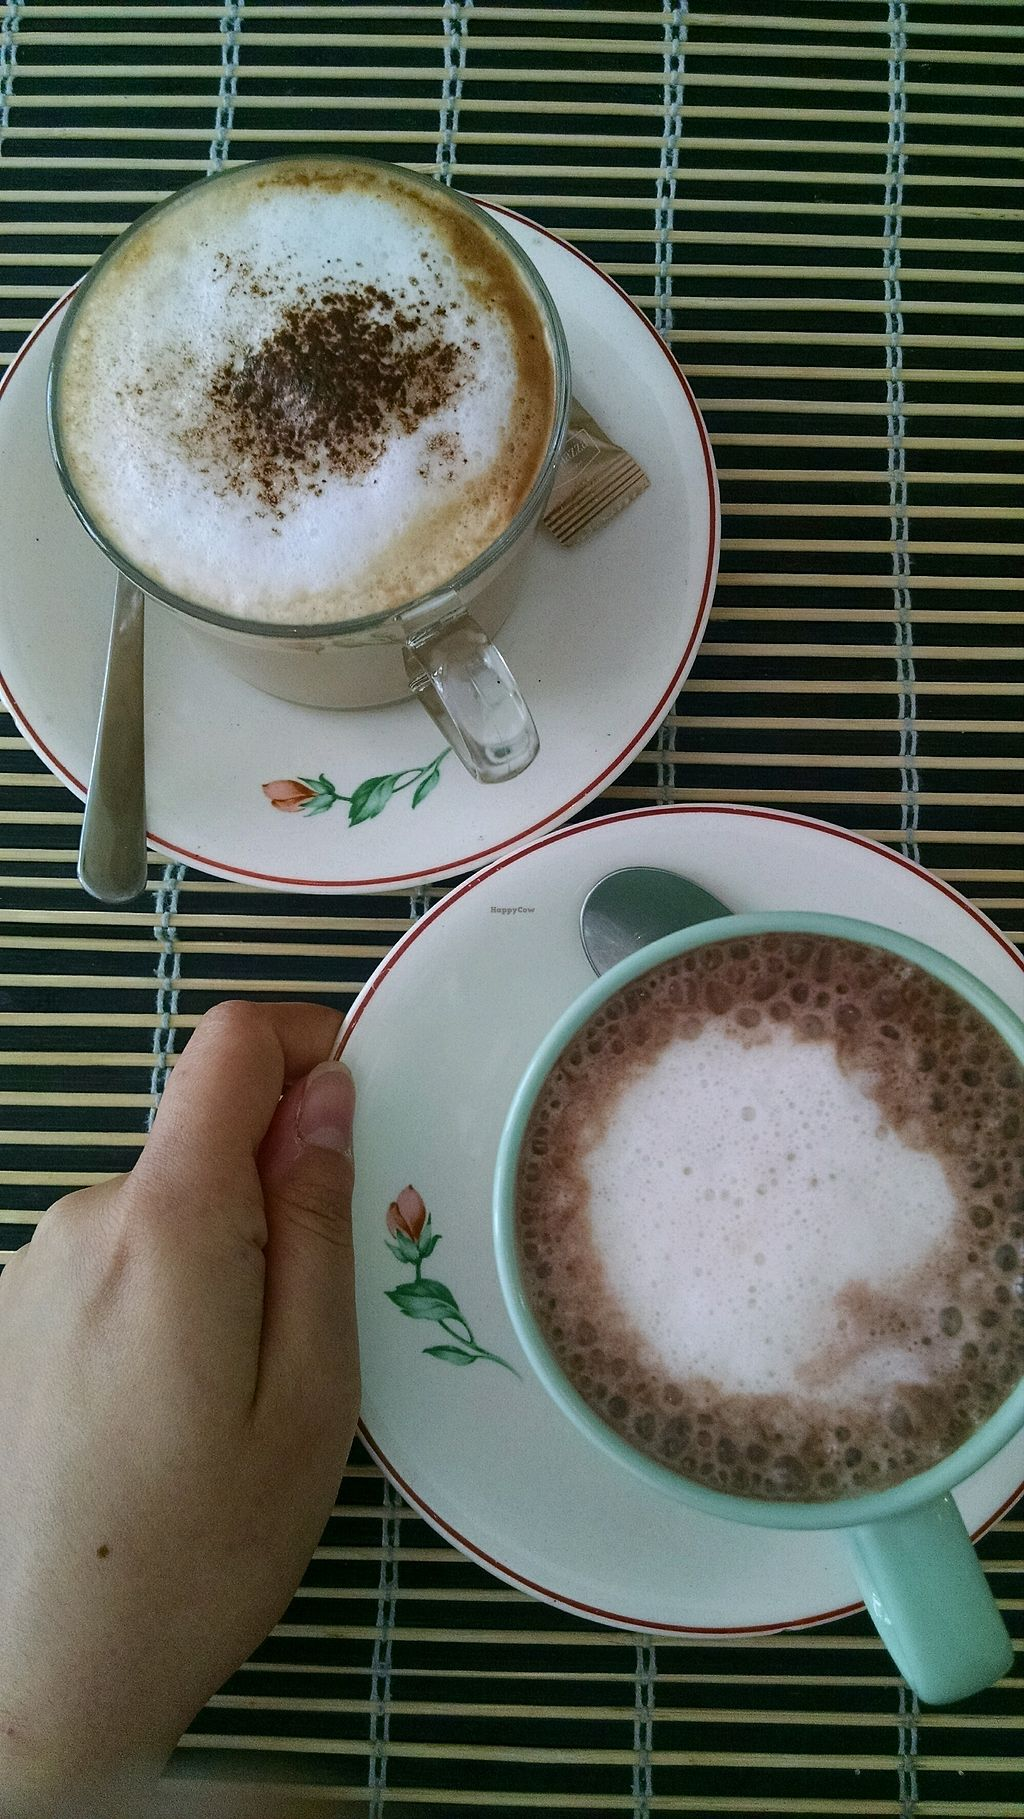 "Photo of Cafe do Comercio  by <a href=""/members/profile/SabrinaHrovatin"">SabrinaHrovatin</a> <br/>Cacao and Cappucchino with soy milk <br/> August 24, 2017  - <a href='/contact/abuse/image/97297/296669'>Report</a>"